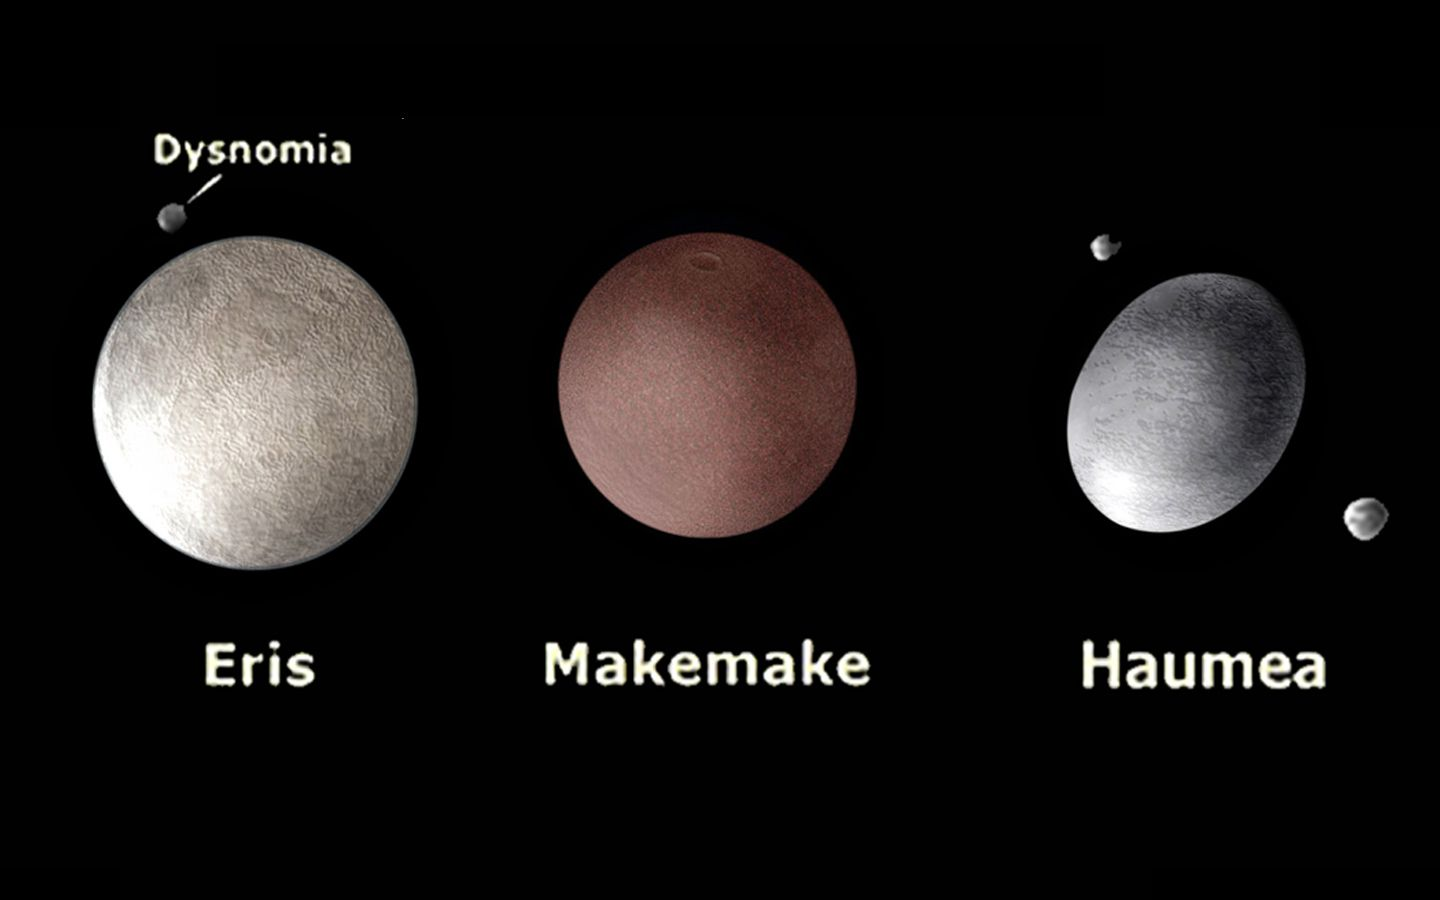 dwarf planets haumea - photo #21